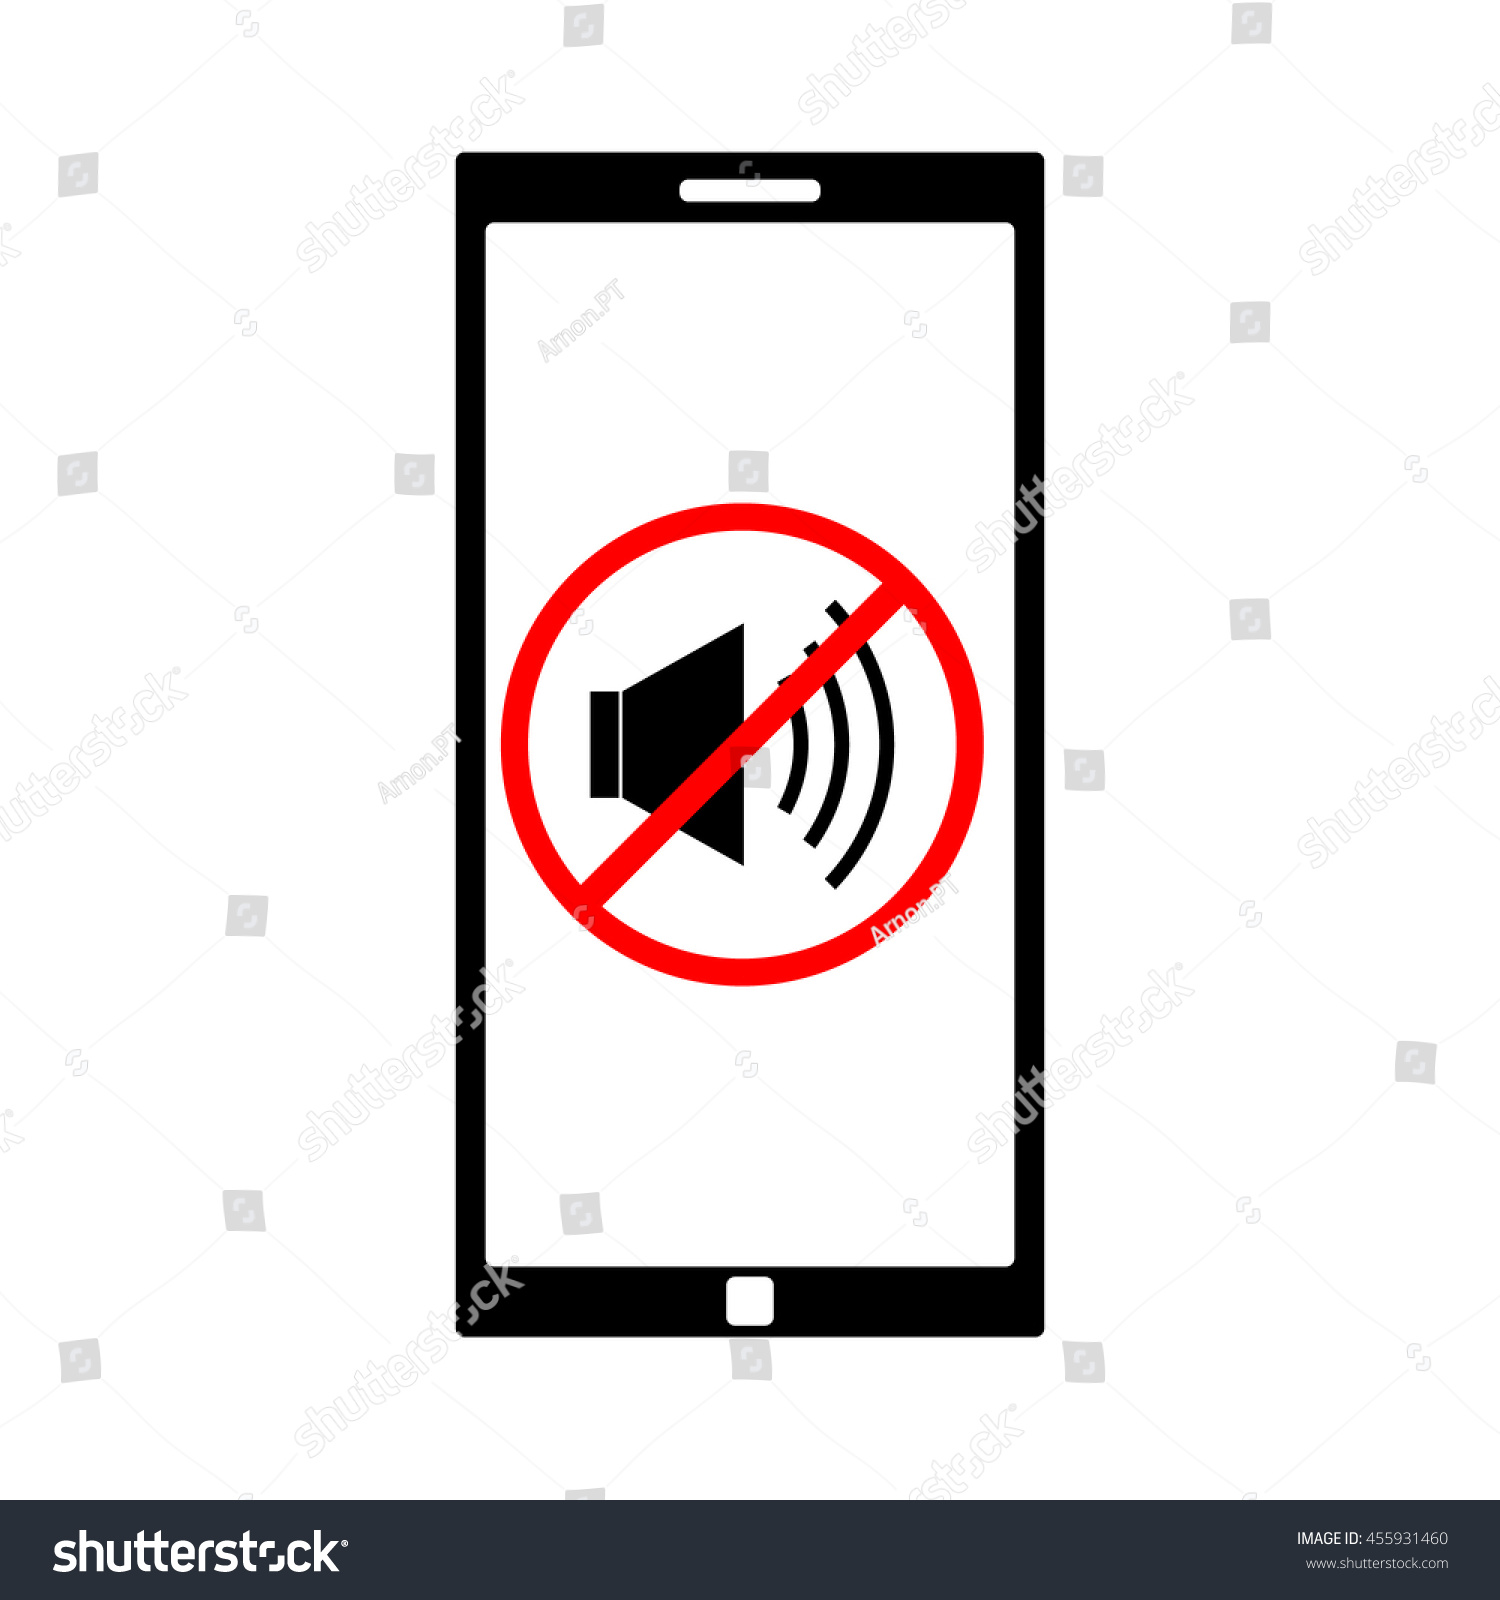 Mute Cell Phone Sign Symbol Stock Vector 455931460 - Shutterstock